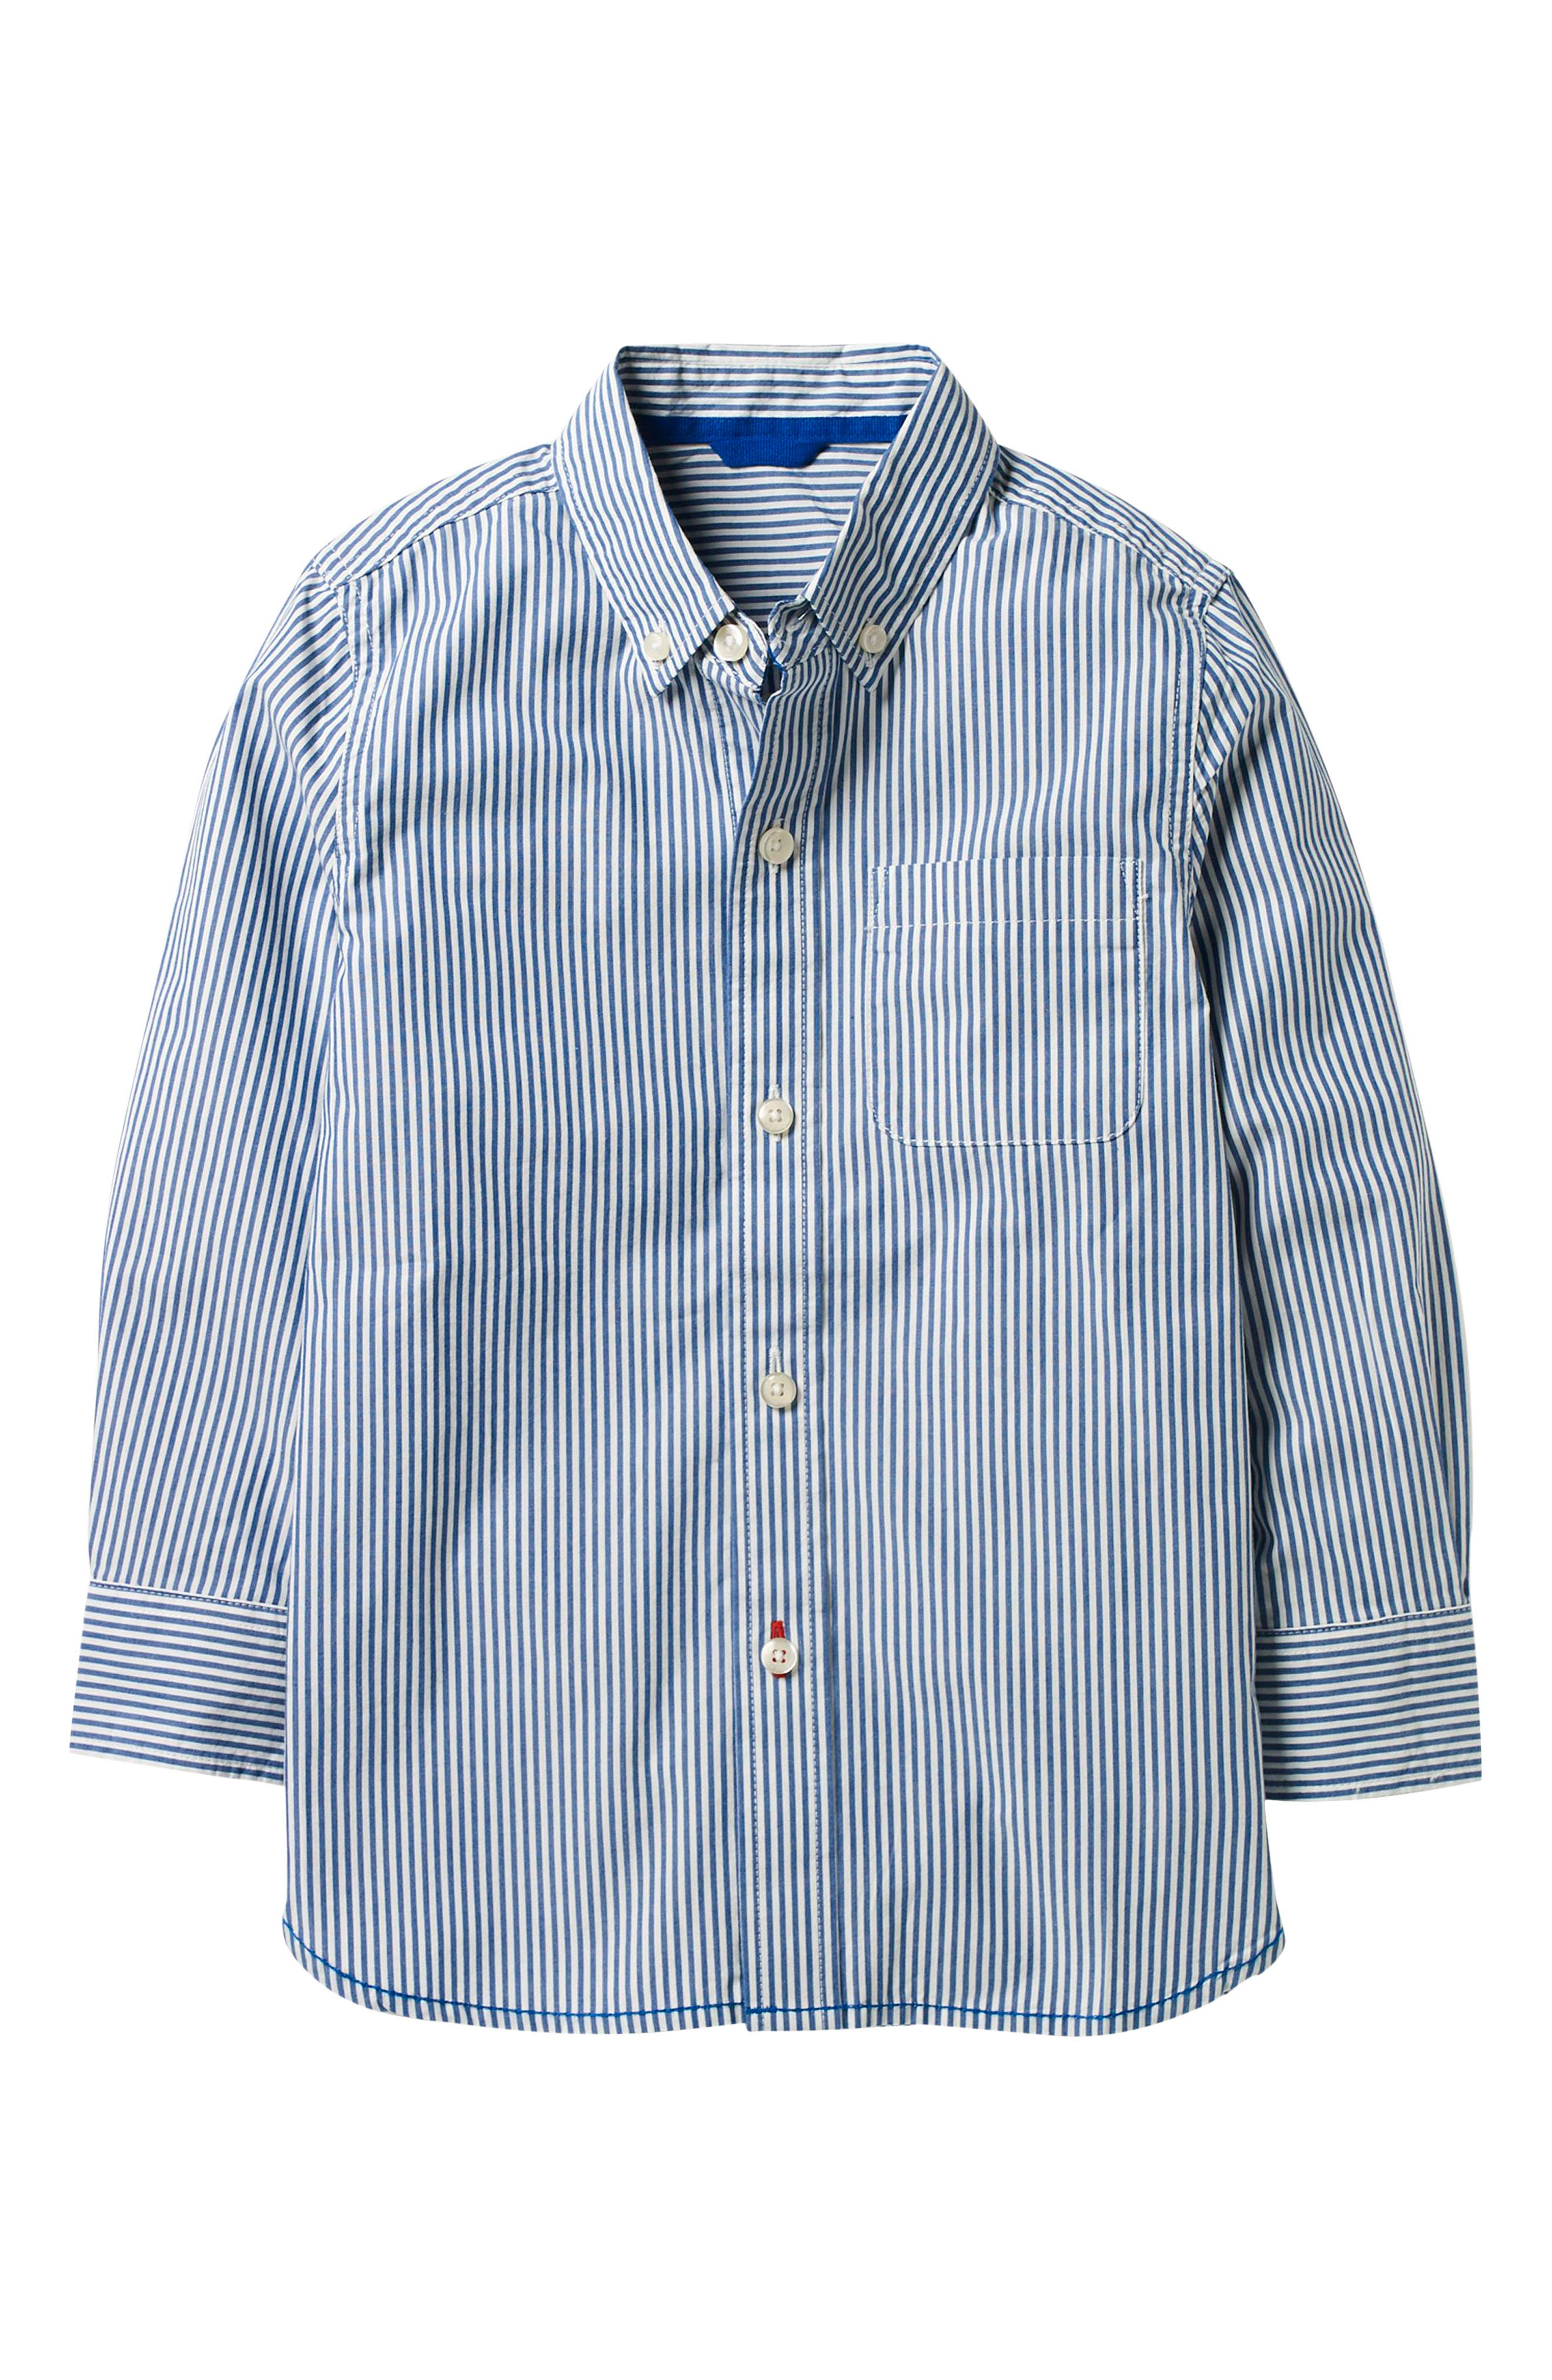 Laundered Stripe Woven Shirt,                         Main,                         color, 454